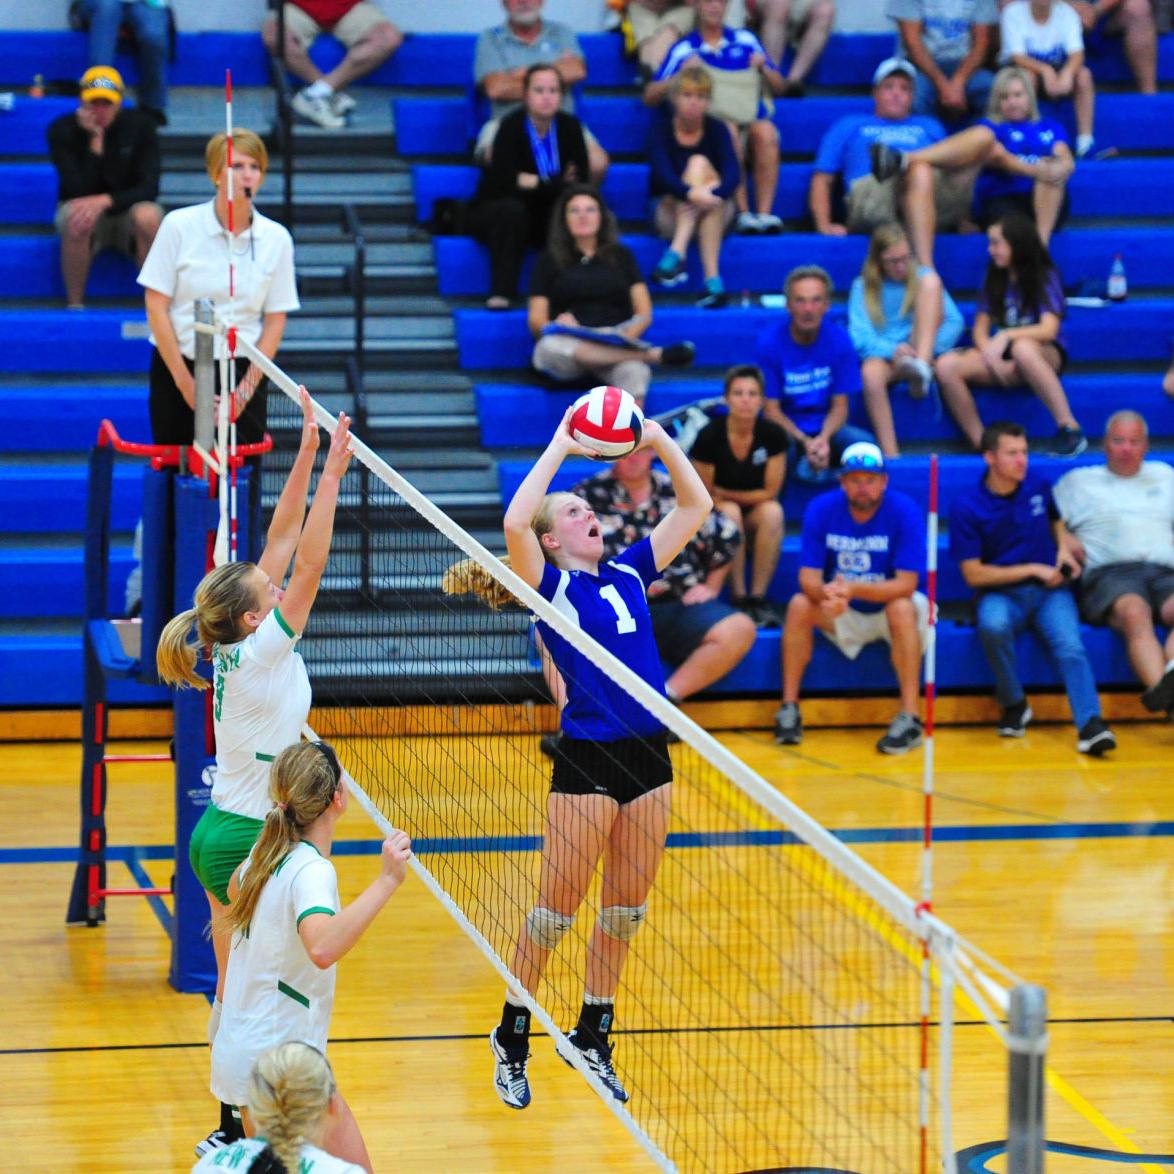 Volleyball — Hermann vs. New Haven, Hermann Tournament Third Place